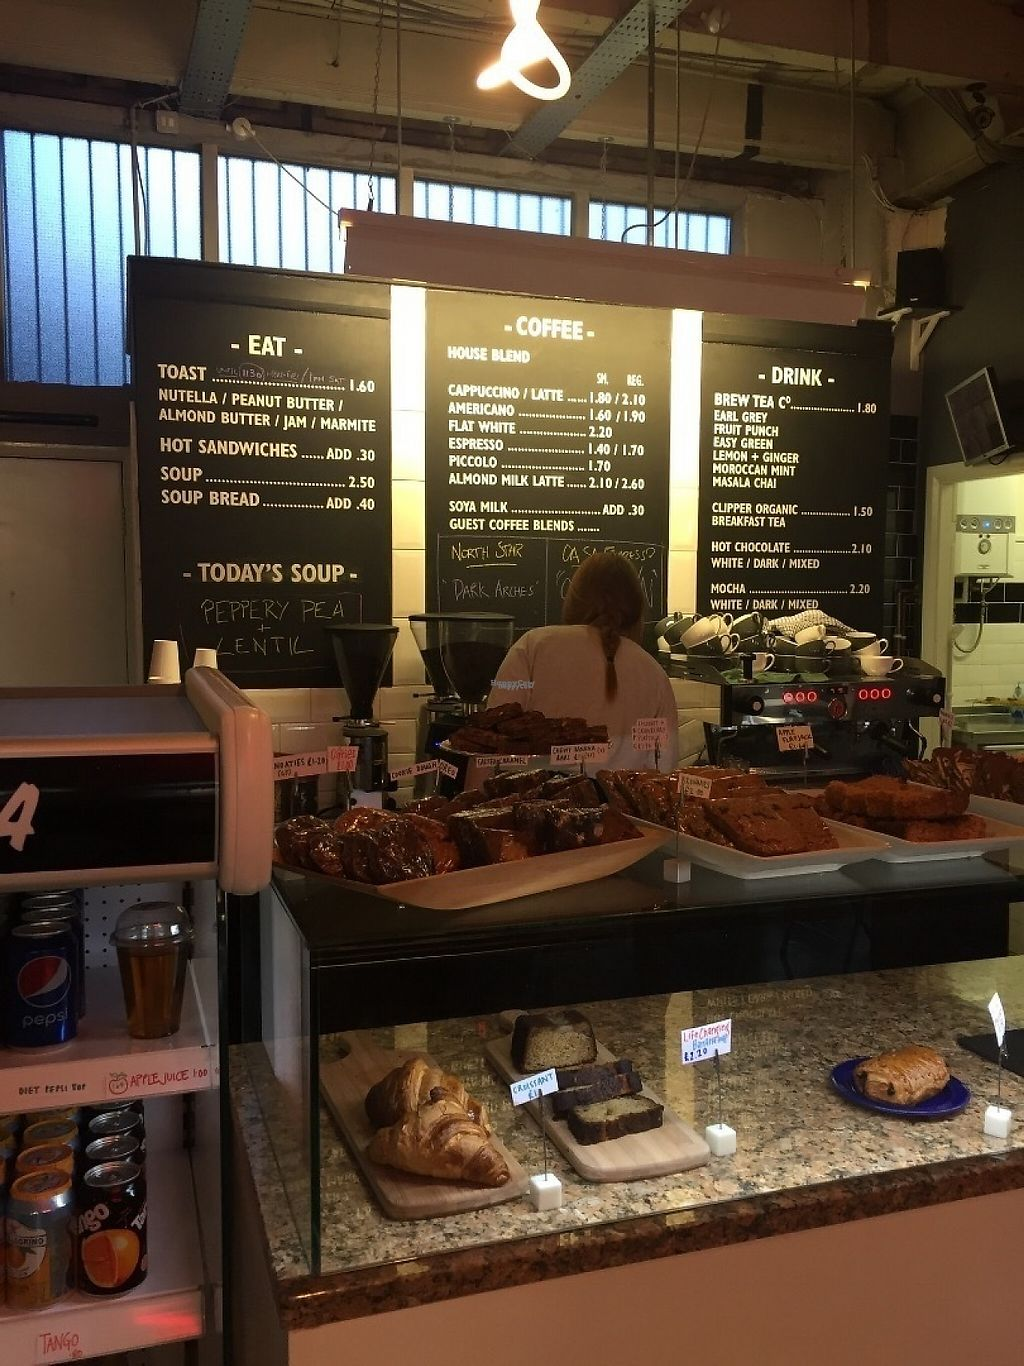 """Photo of Cafe 164  by <a href=""""/members/profile/StevieSurf"""">StevieSurf</a> <br/>Counter and cakes  <br/> February 23, 2017  - <a href='/contact/abuse/image/87361/229778'>Report</a>"""